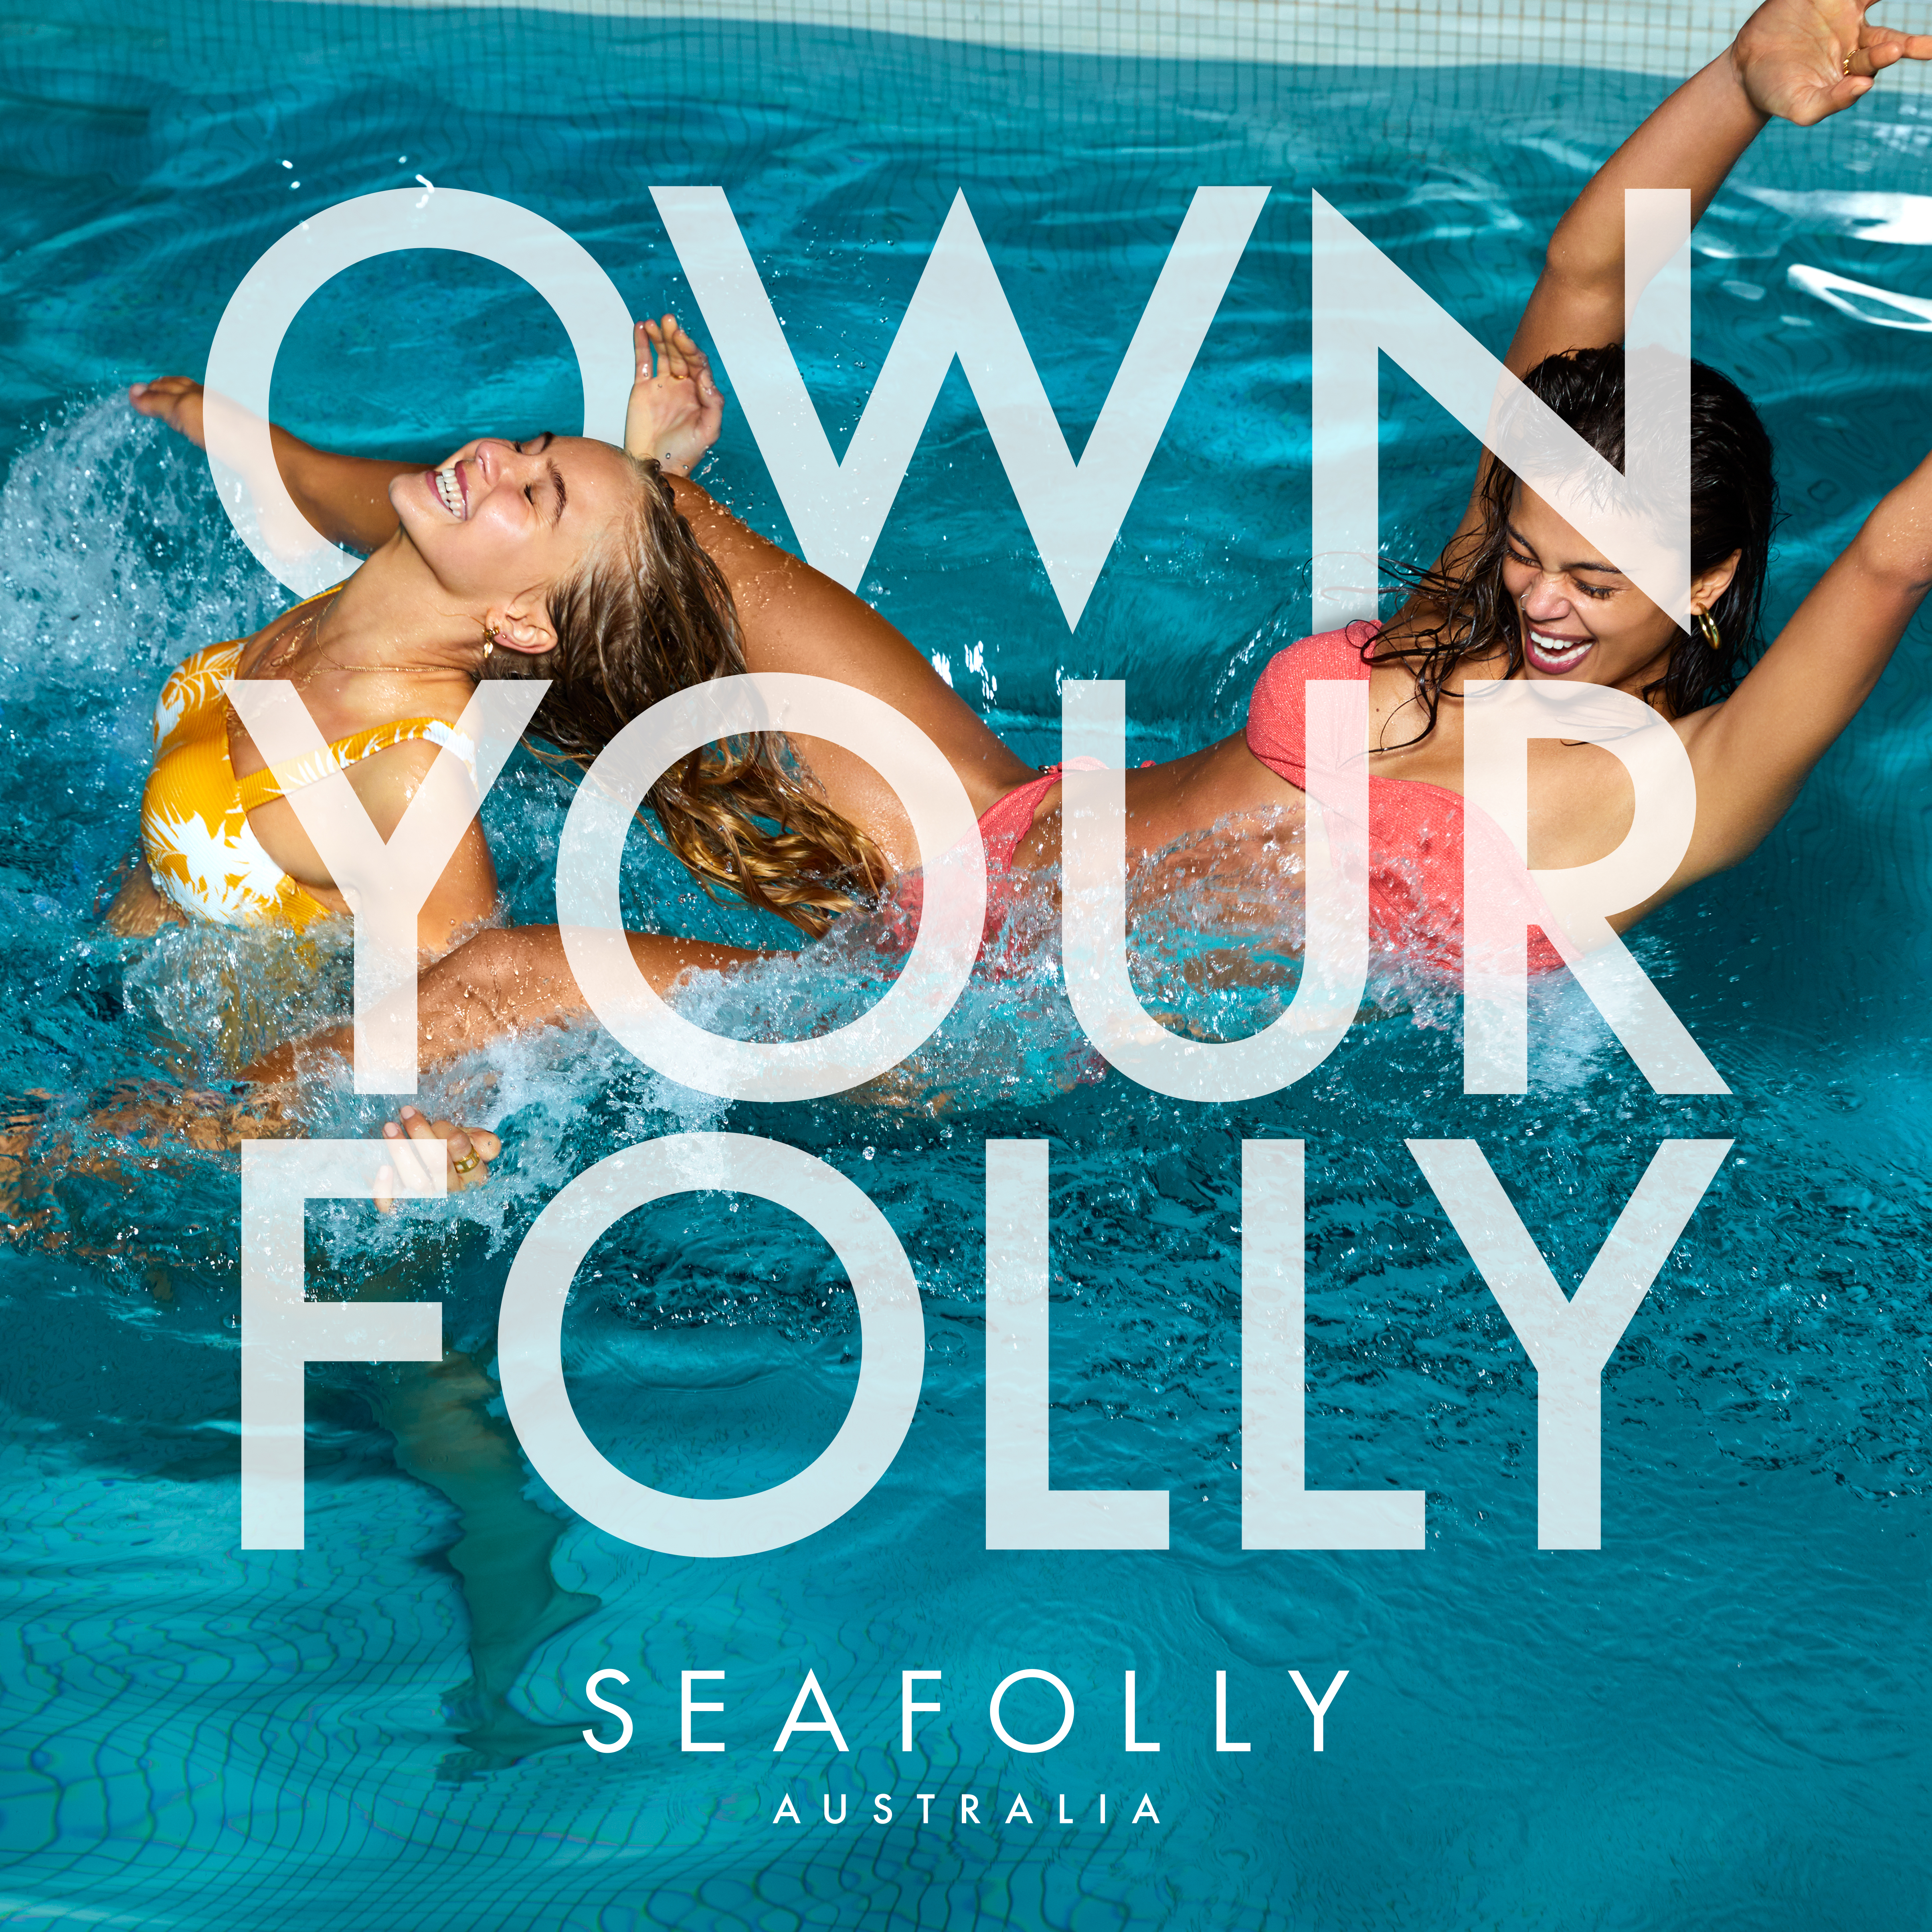 Seafolly gives women the confidence to own it in new 'Own Your Folly' campaign via Thinkerbell